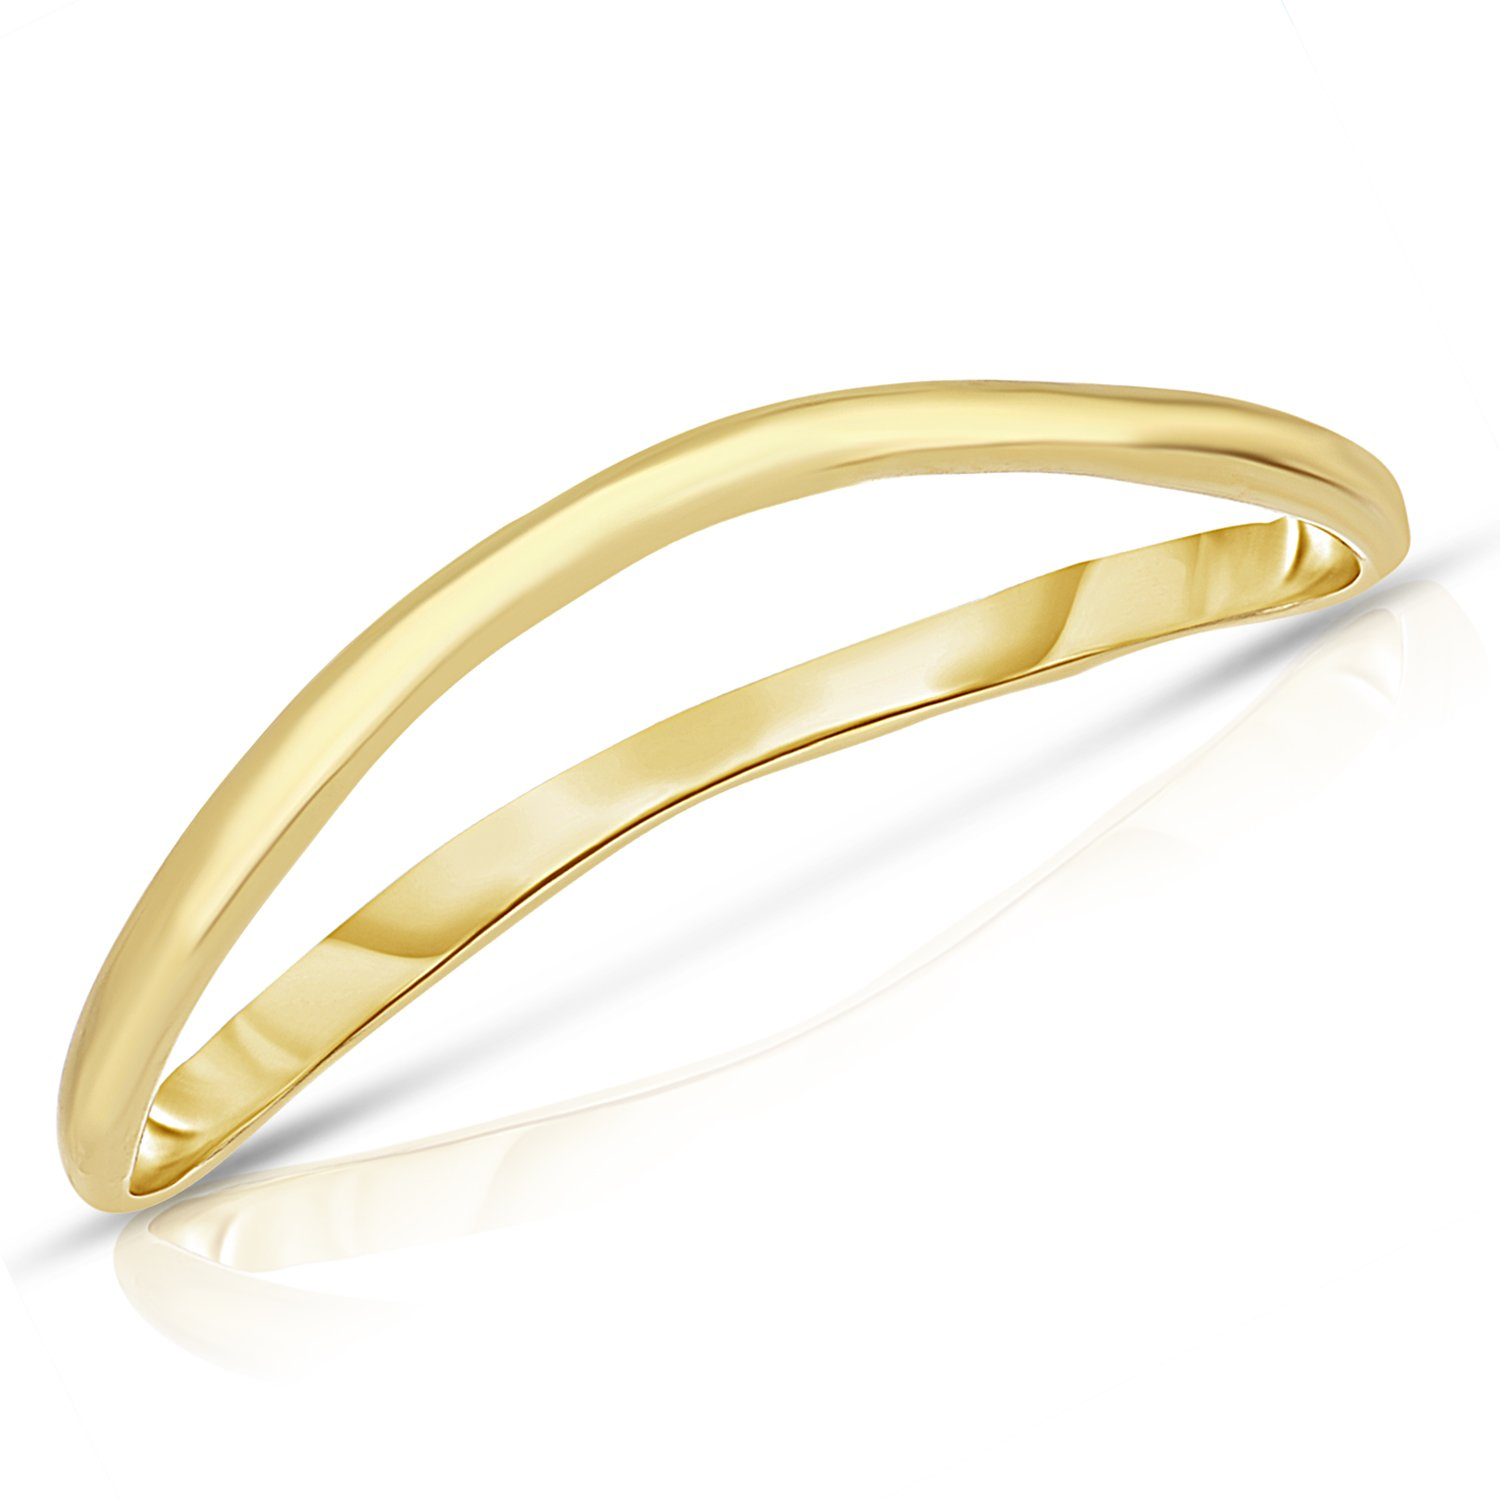 Thin Comfort Fit Curved Wave Thumb Ring (1.5mm) – 10k Yellow Gold - Size 12